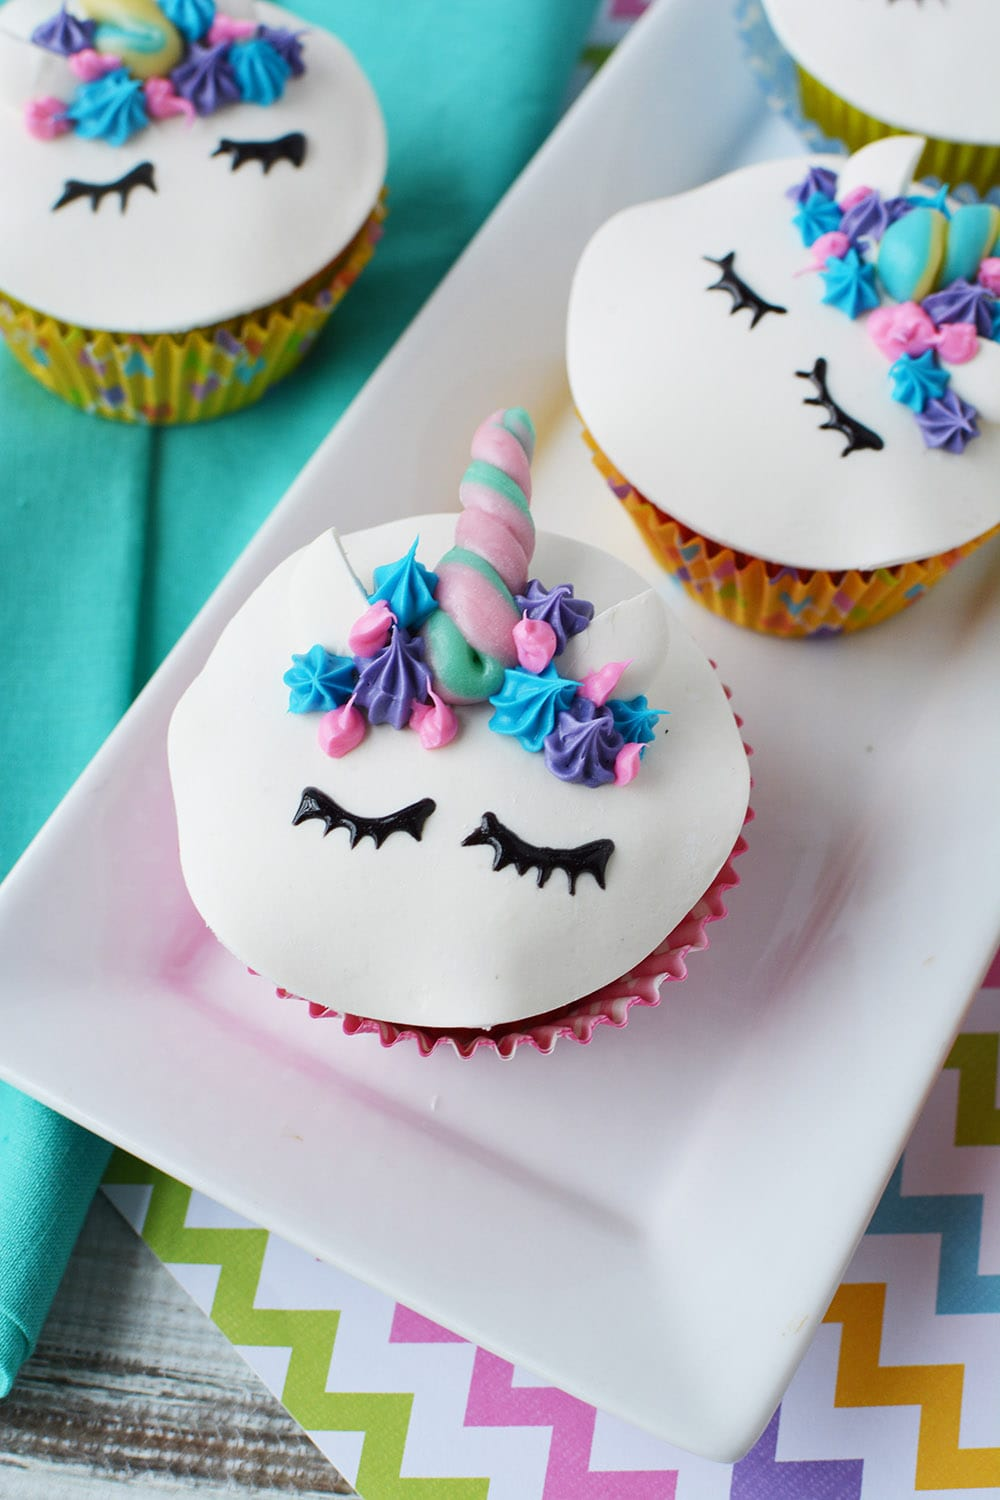 cute unicorn cupcakes with faces